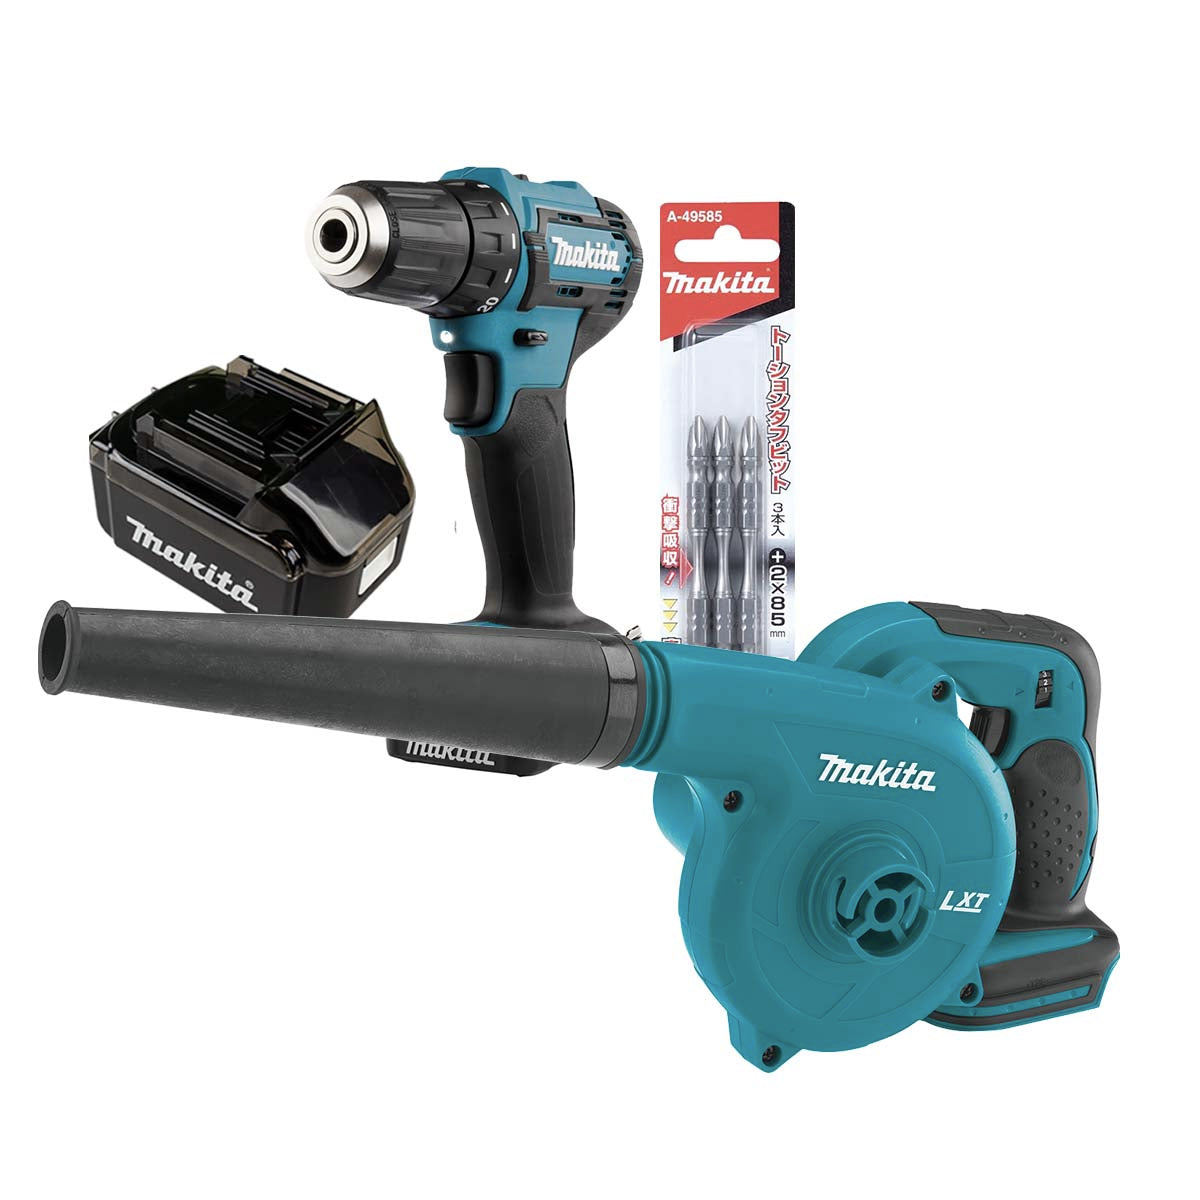 Makita DC Driver Drill 12V (DF333DNX10) - COMBO SET 3